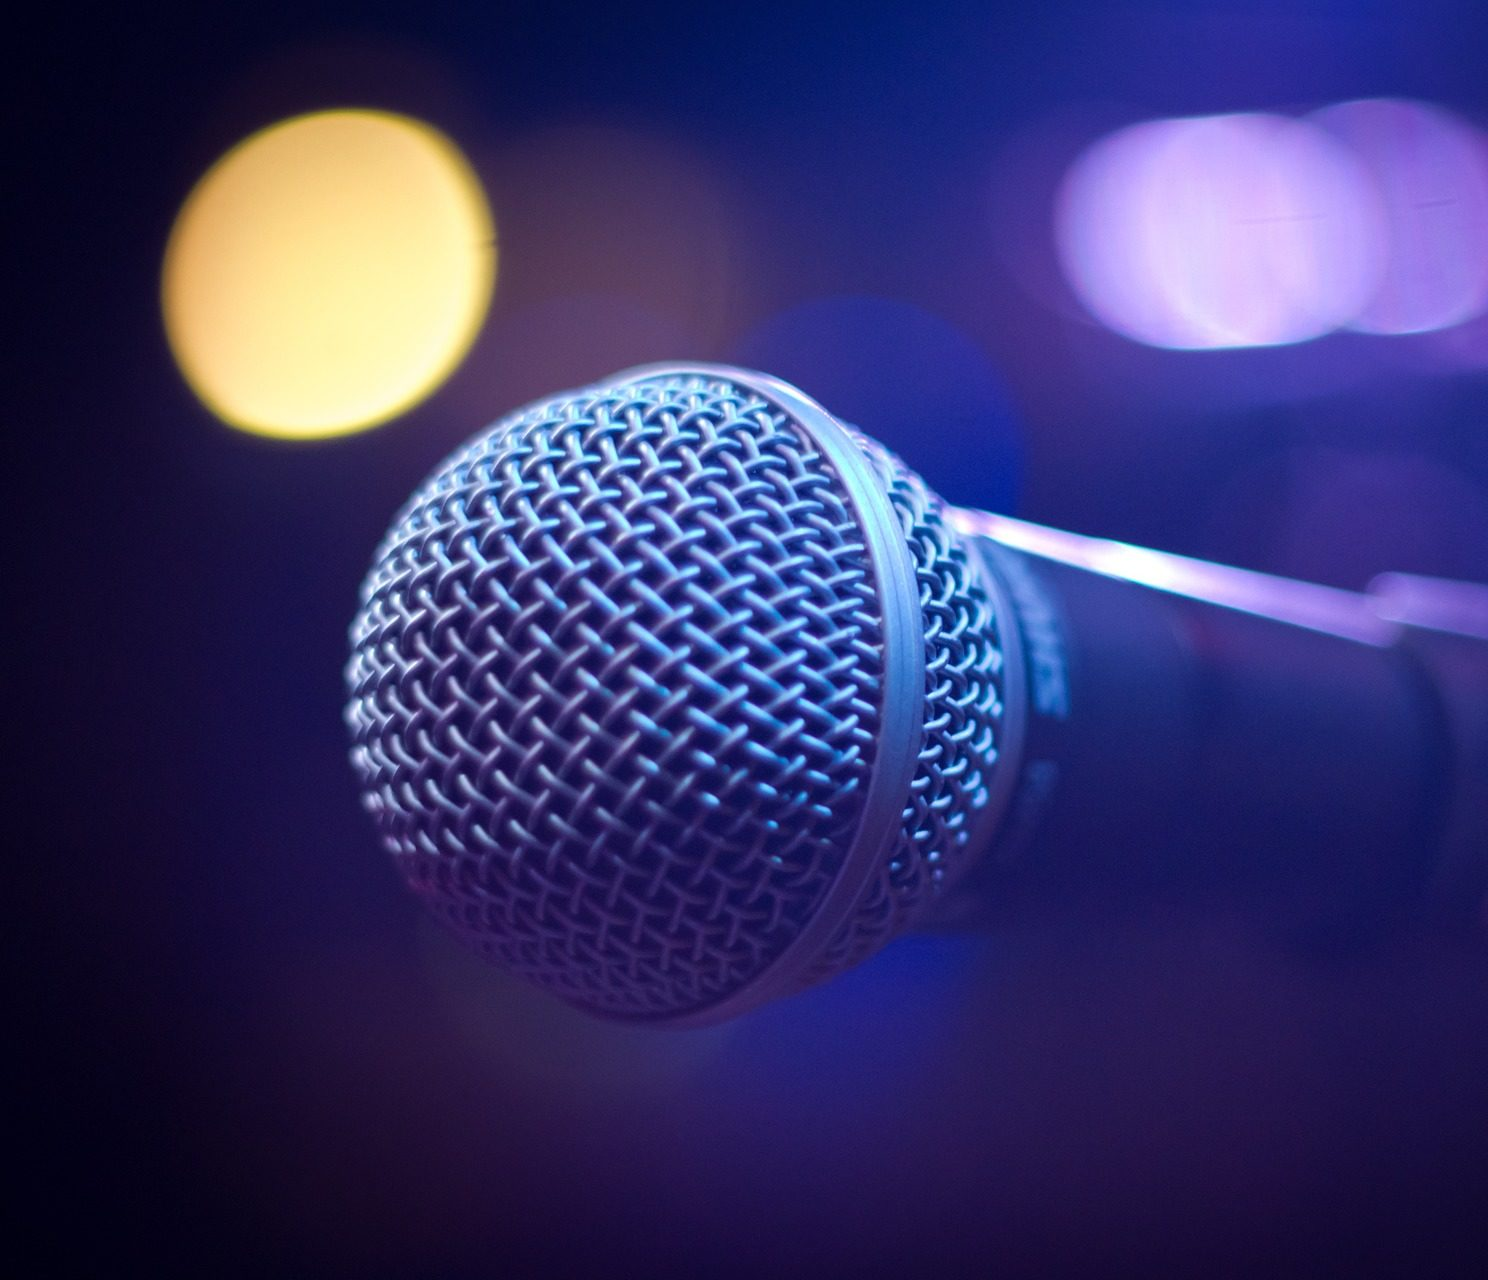 https://pixabay.com/photos/microphone-sound-music-1261792/